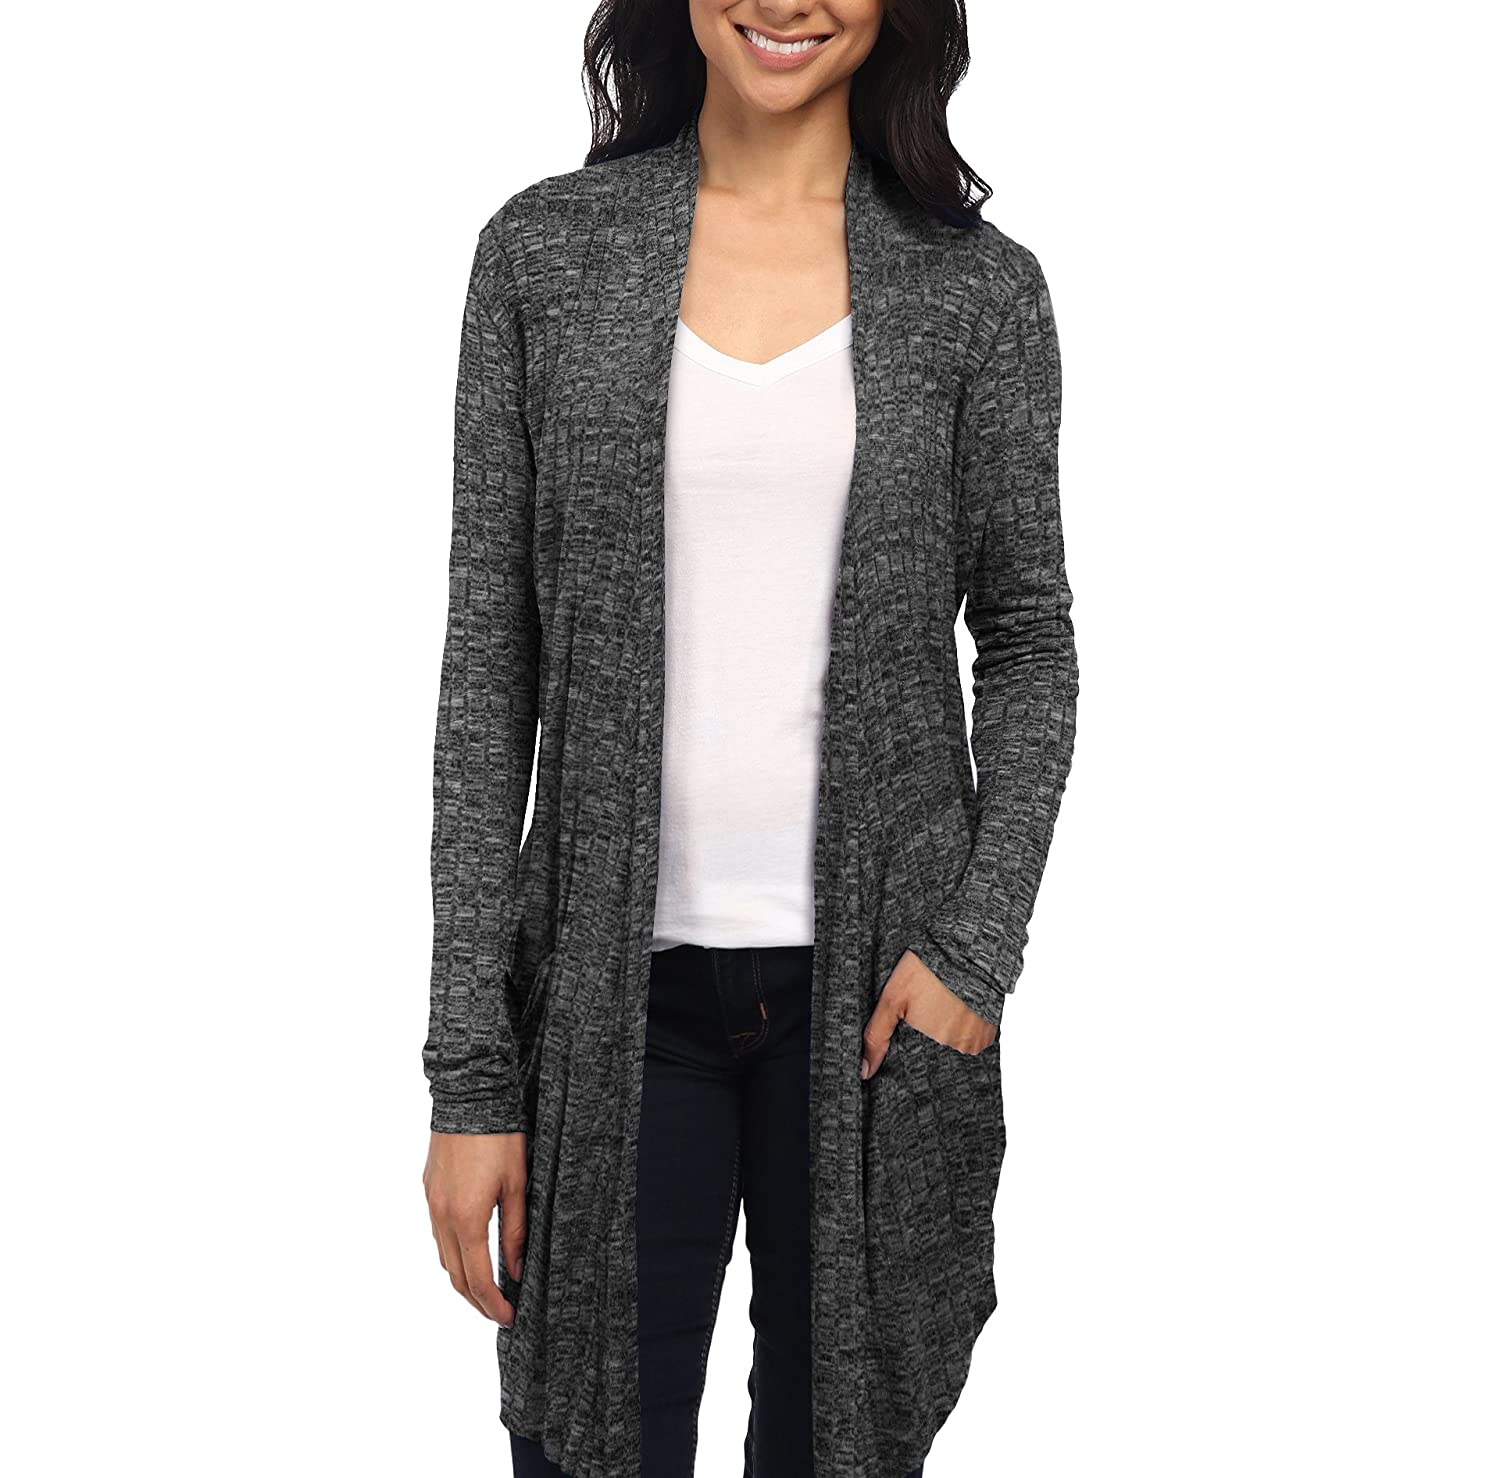 ecad24b224 Womens Lightweight Casual Open Front Drape Long Cardigan with Pockets for  all Season at Amazon Women s Clothing store